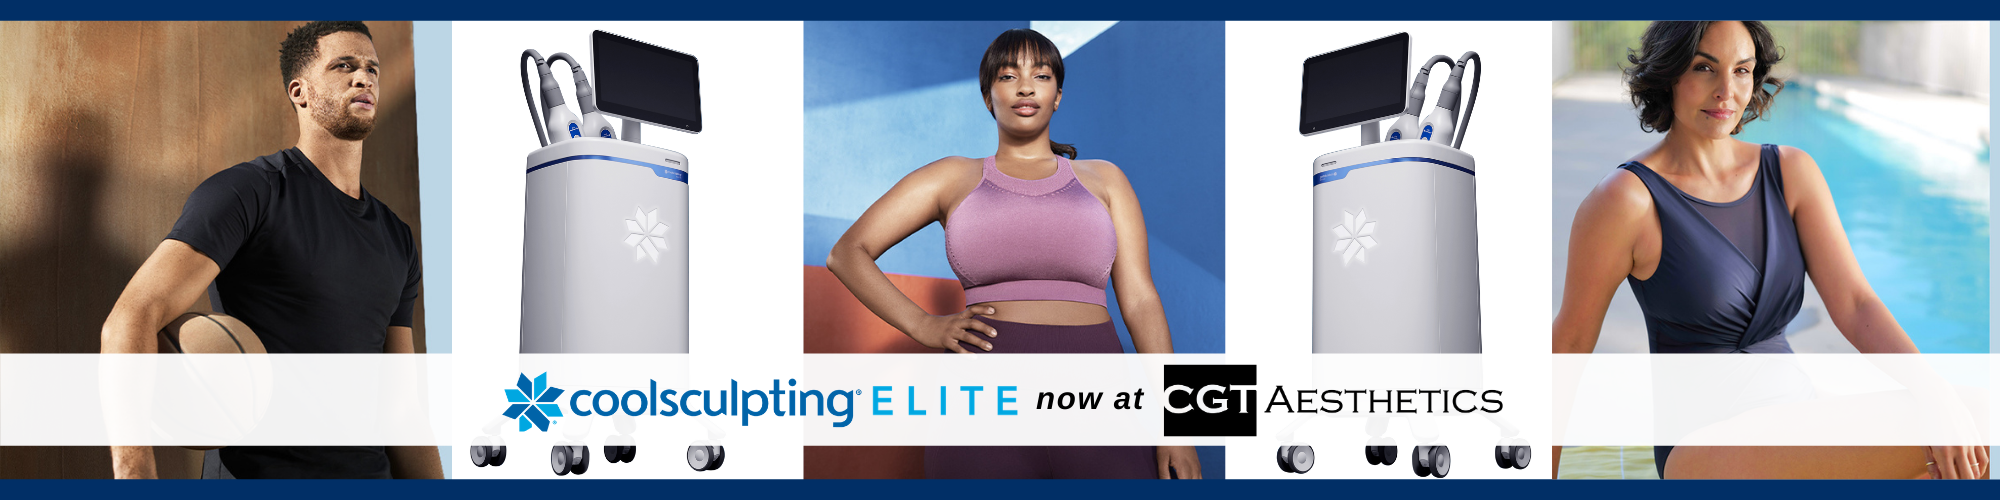 CoolSculpting ELITE now at CGT Aesthetics in Evergreen Park